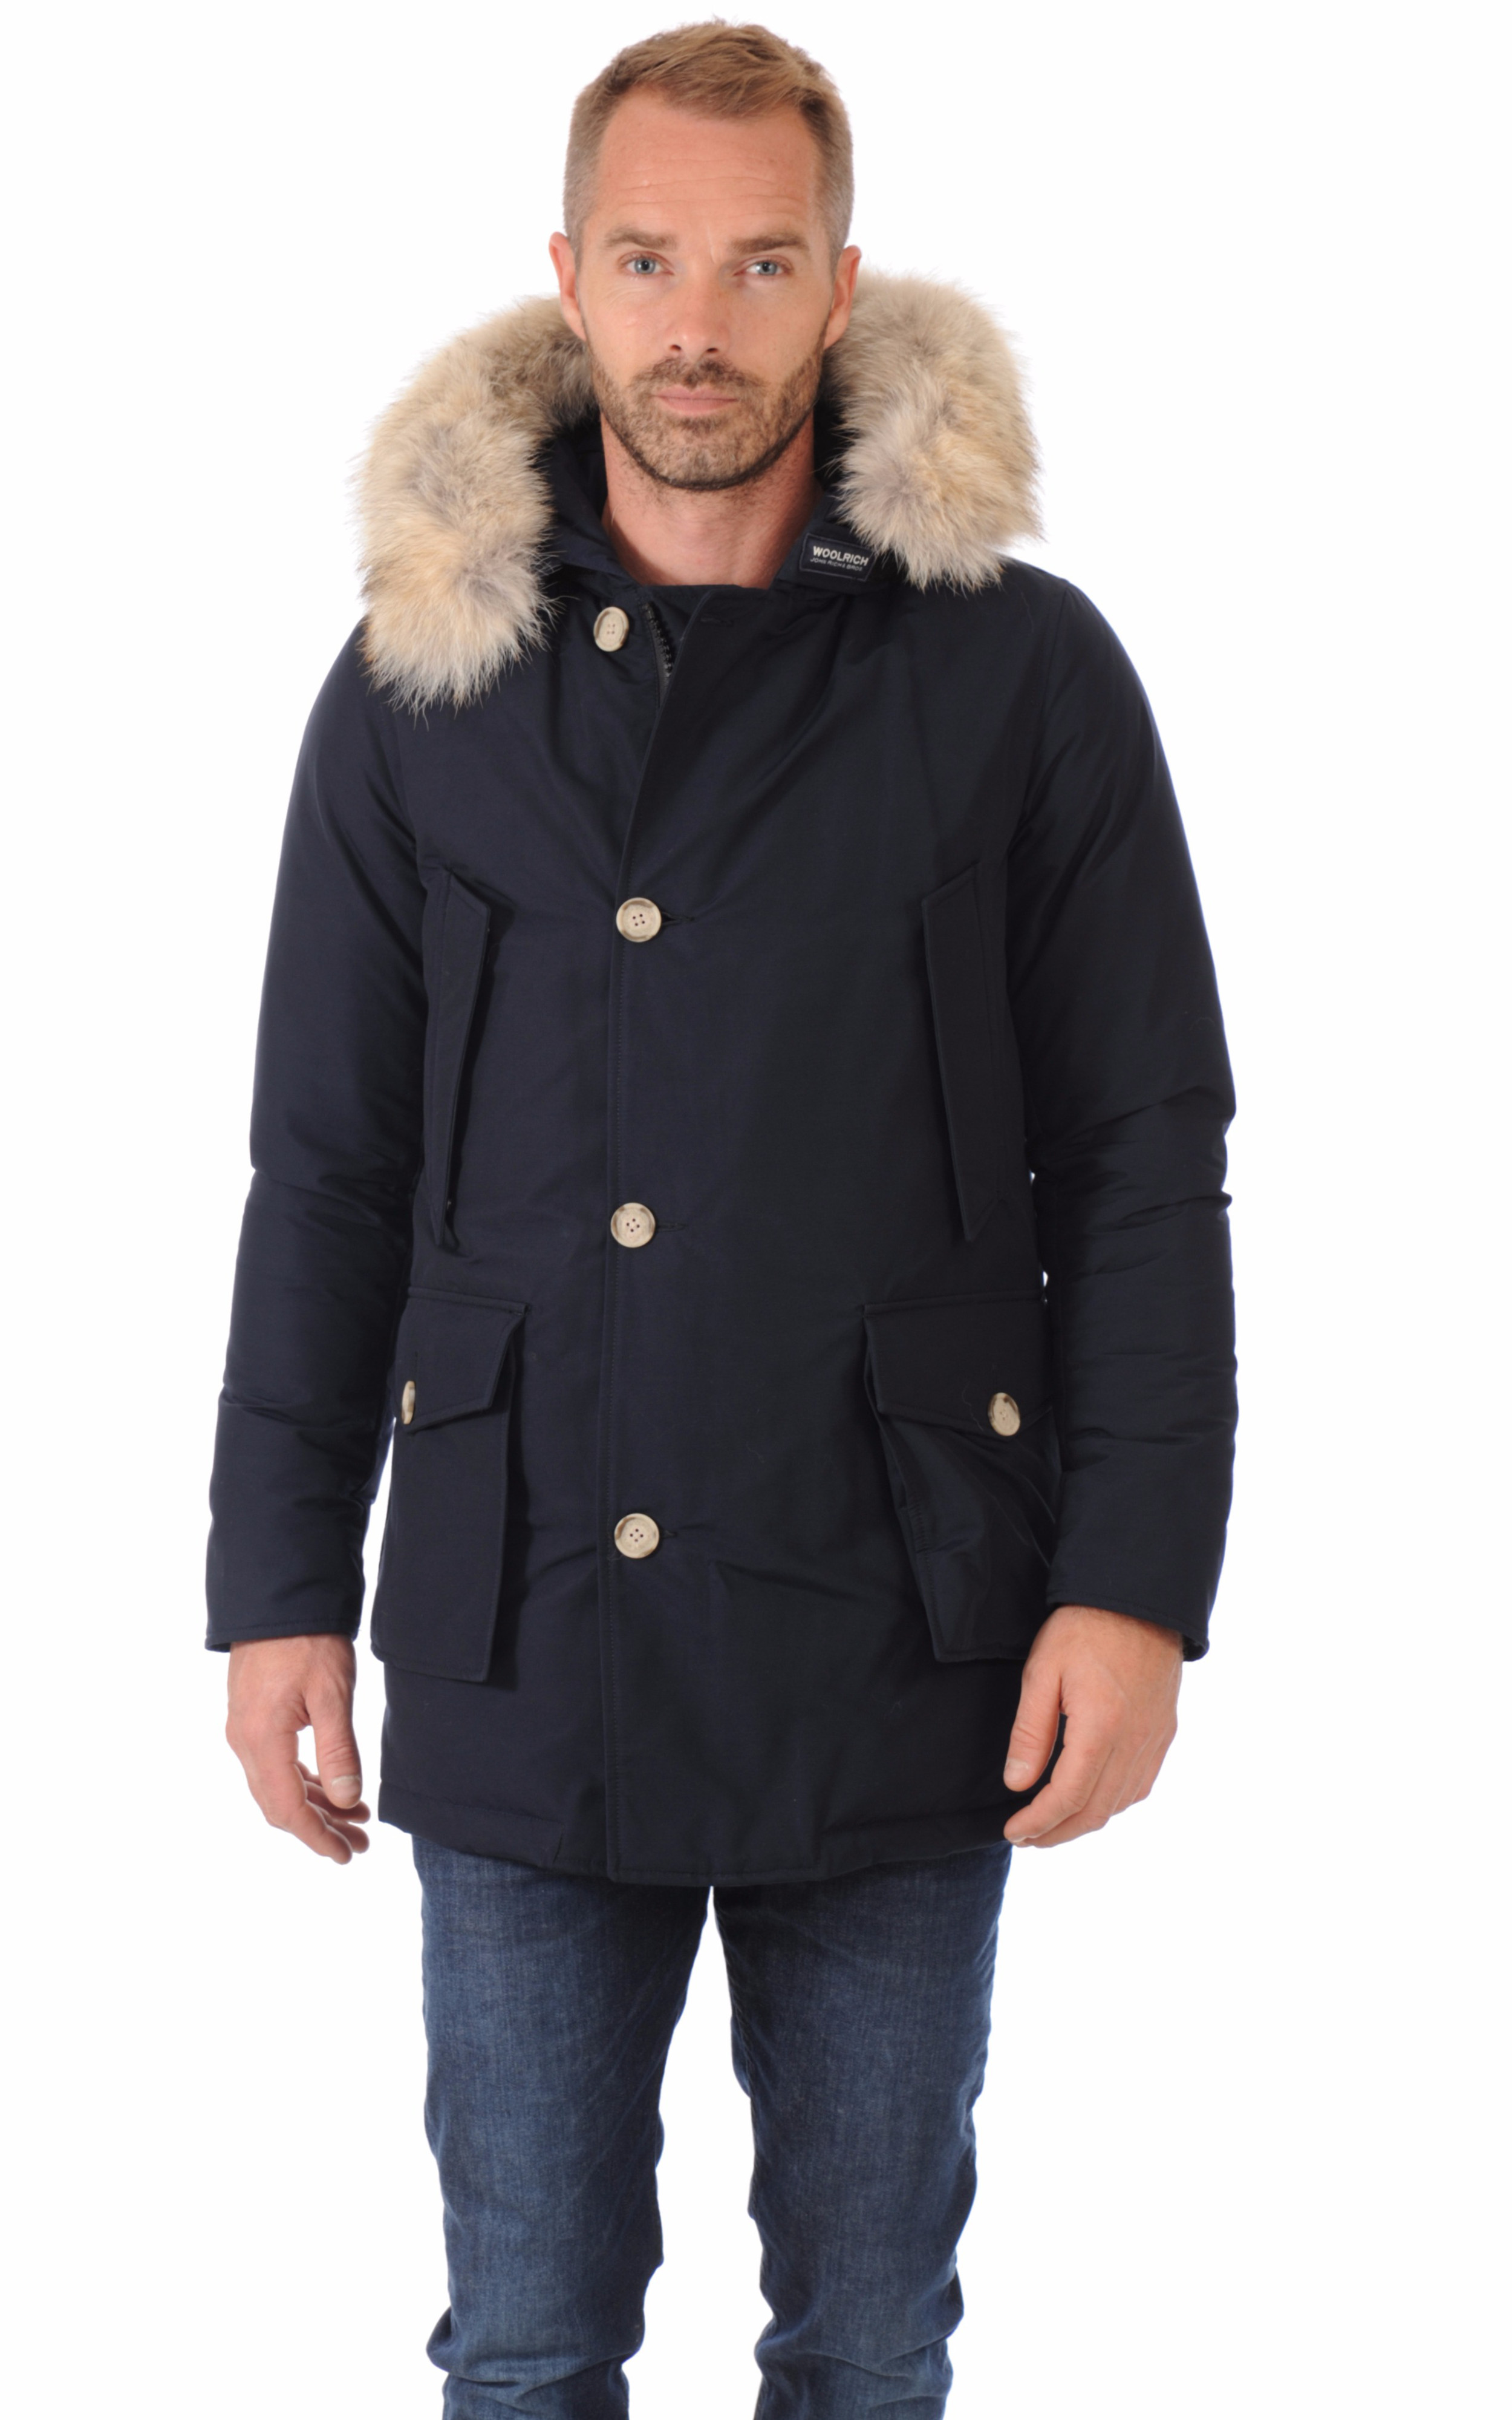 parka avec fourrure homme artic bleu marine woolrich la canadienne doudoune parka textile. Black Bedroom Furniture Sets. Home Design Ideas